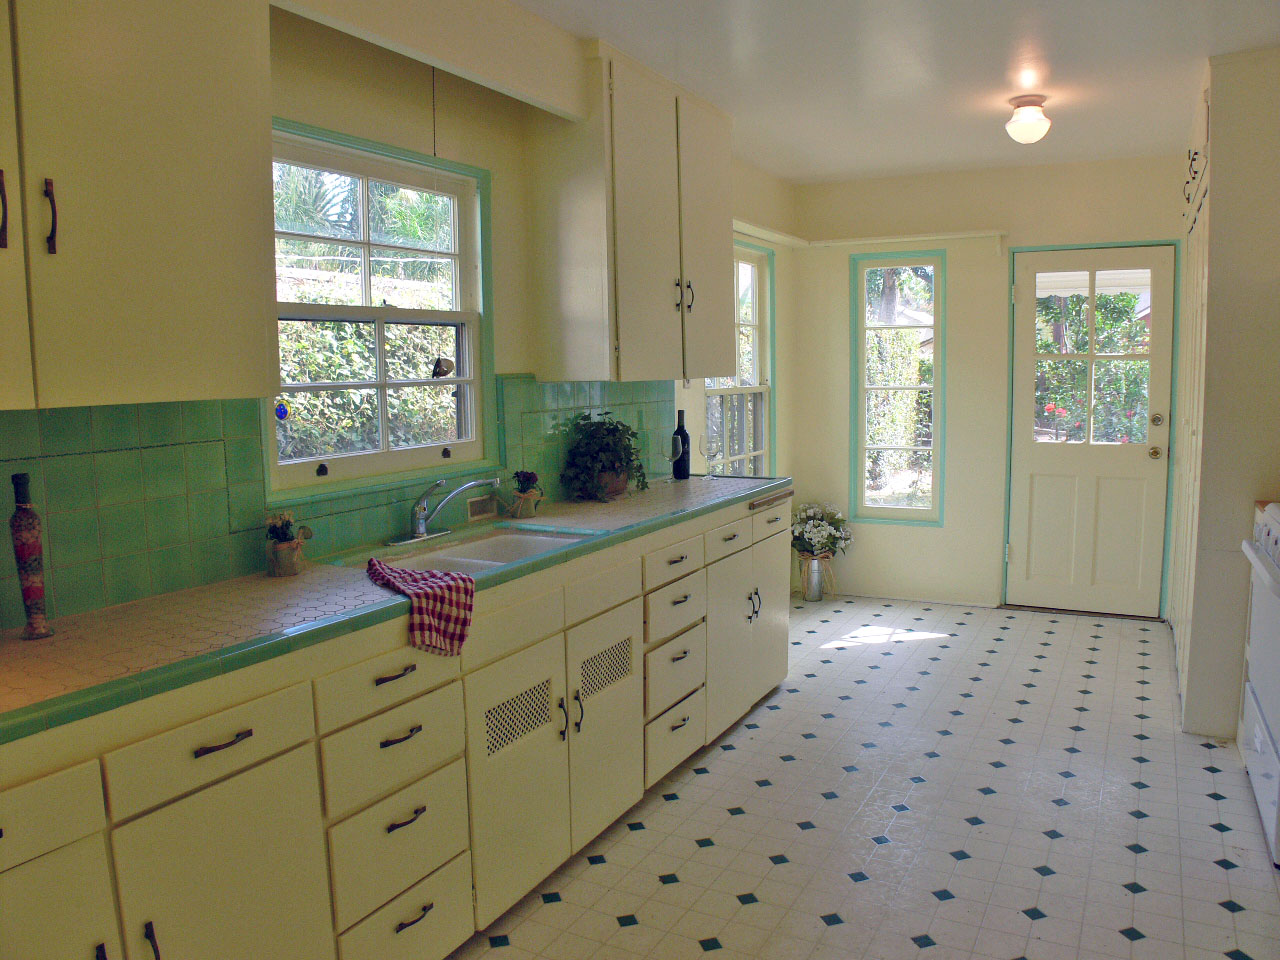 Darling Kitchen With Original Honeycomb Tile Countertops (historic  Enthusiasts Rejoice!), New Gas